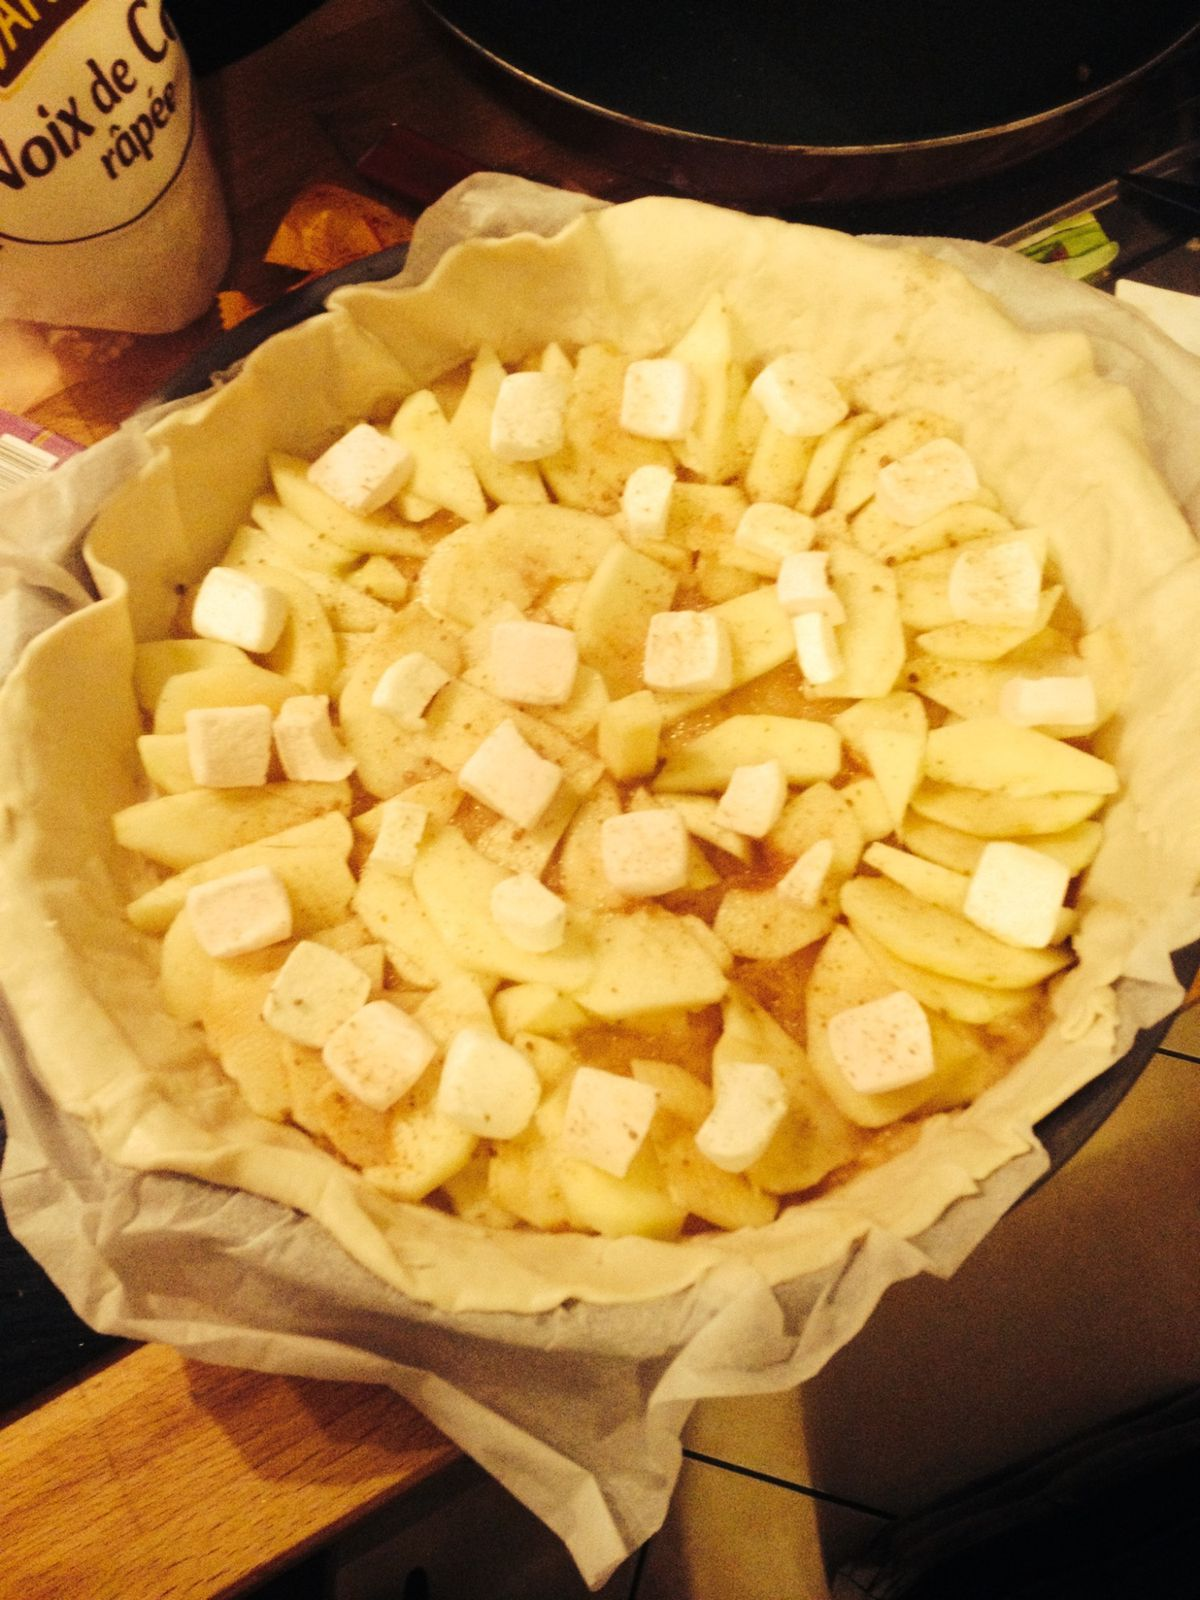 La Tarte Apple-Mallow